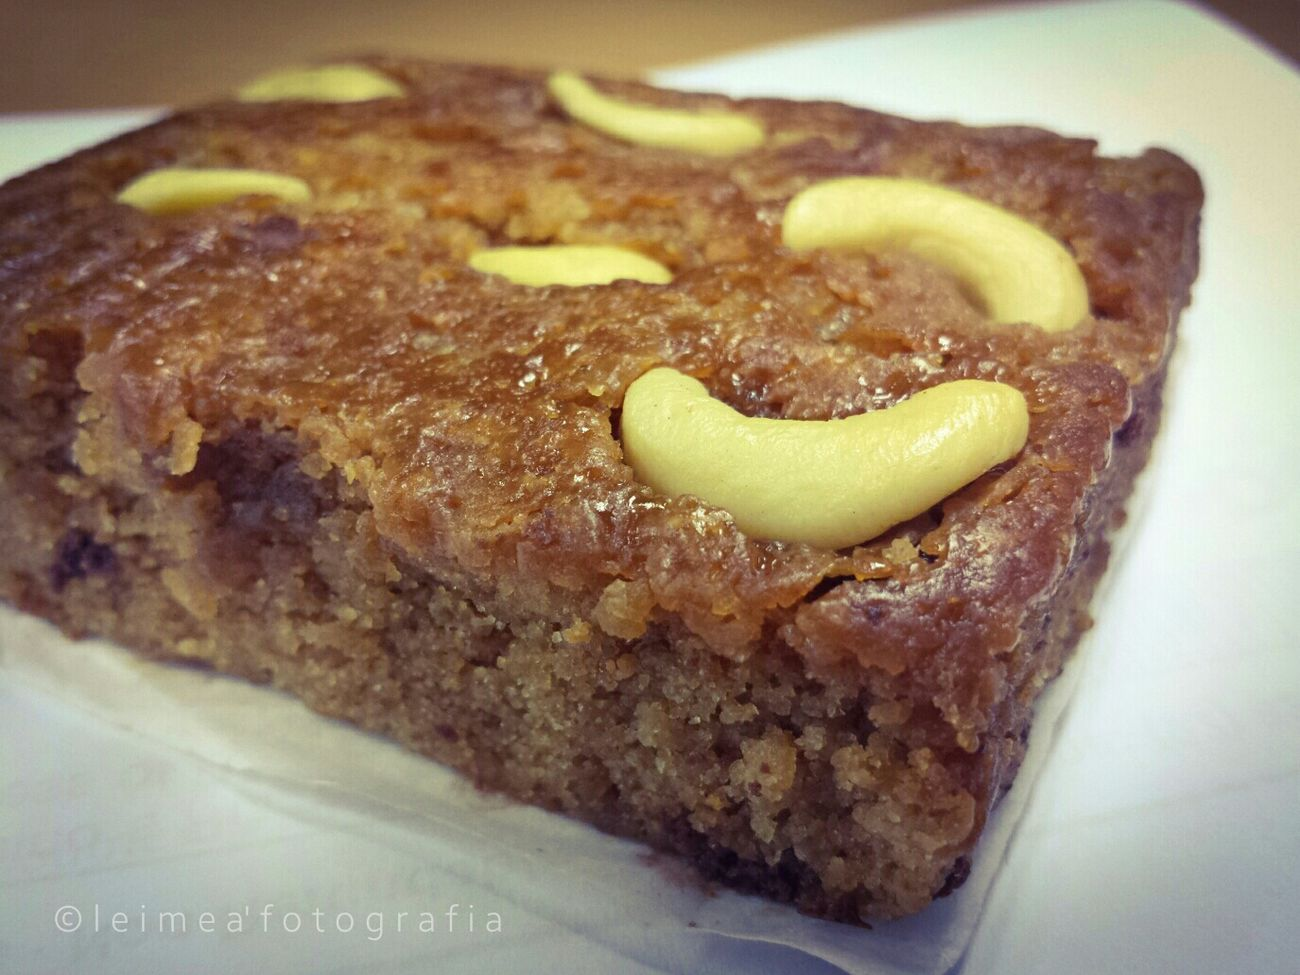 The good taste brownies of Banchetto. Brownies Yummy Ourfavorite Banchetto Foodpic Instagramer Photoshop Androidography Photography Editedbyme